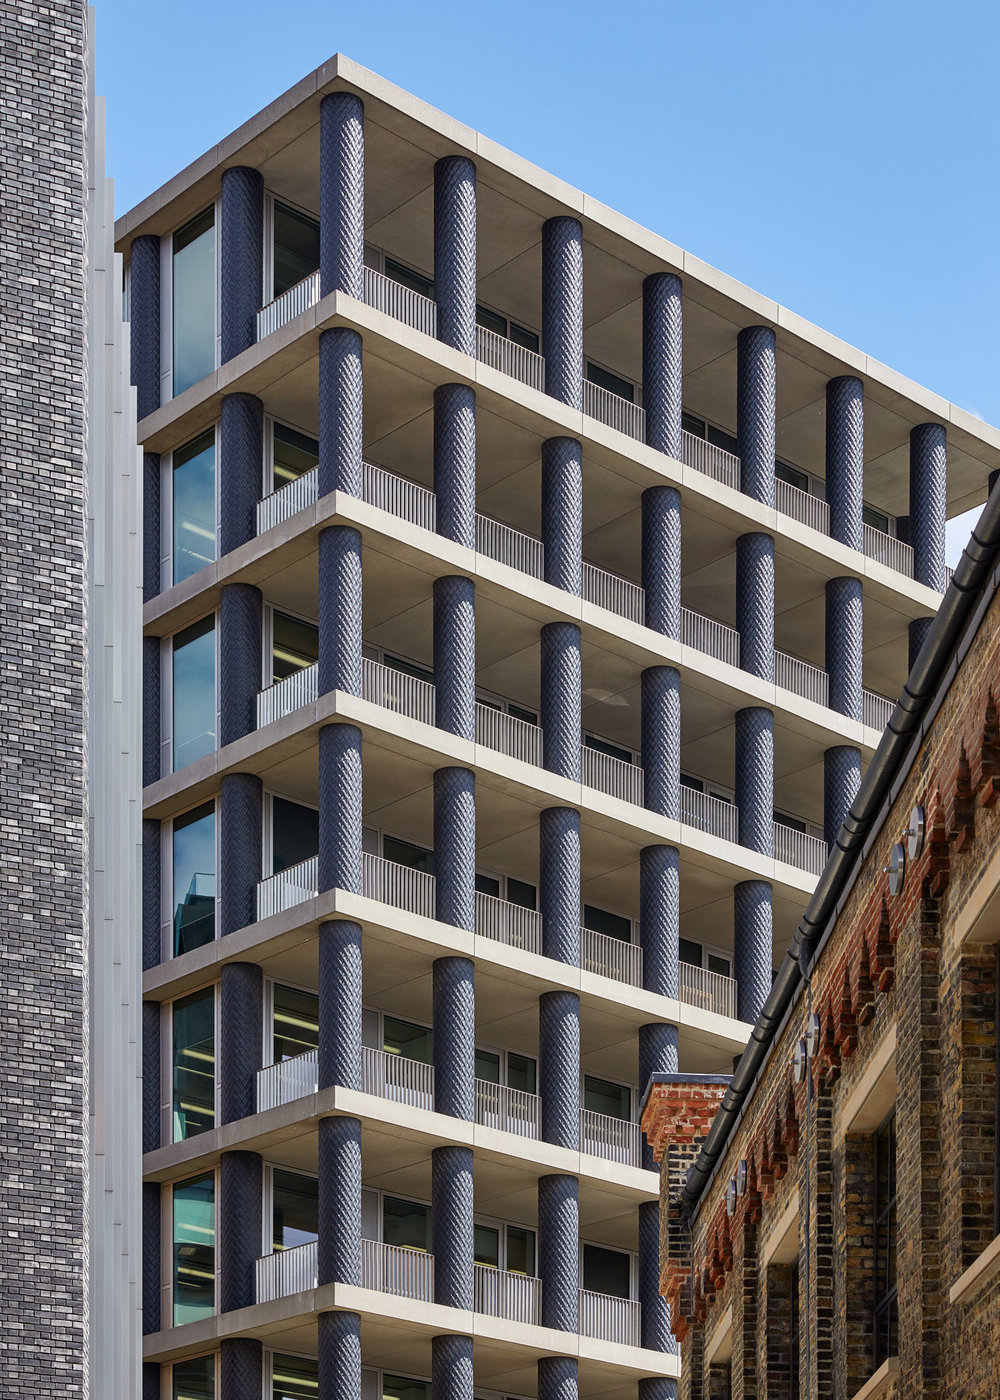 1 PANCRAS SQUARE, LONDON: DAVID CHIPPERFIELD